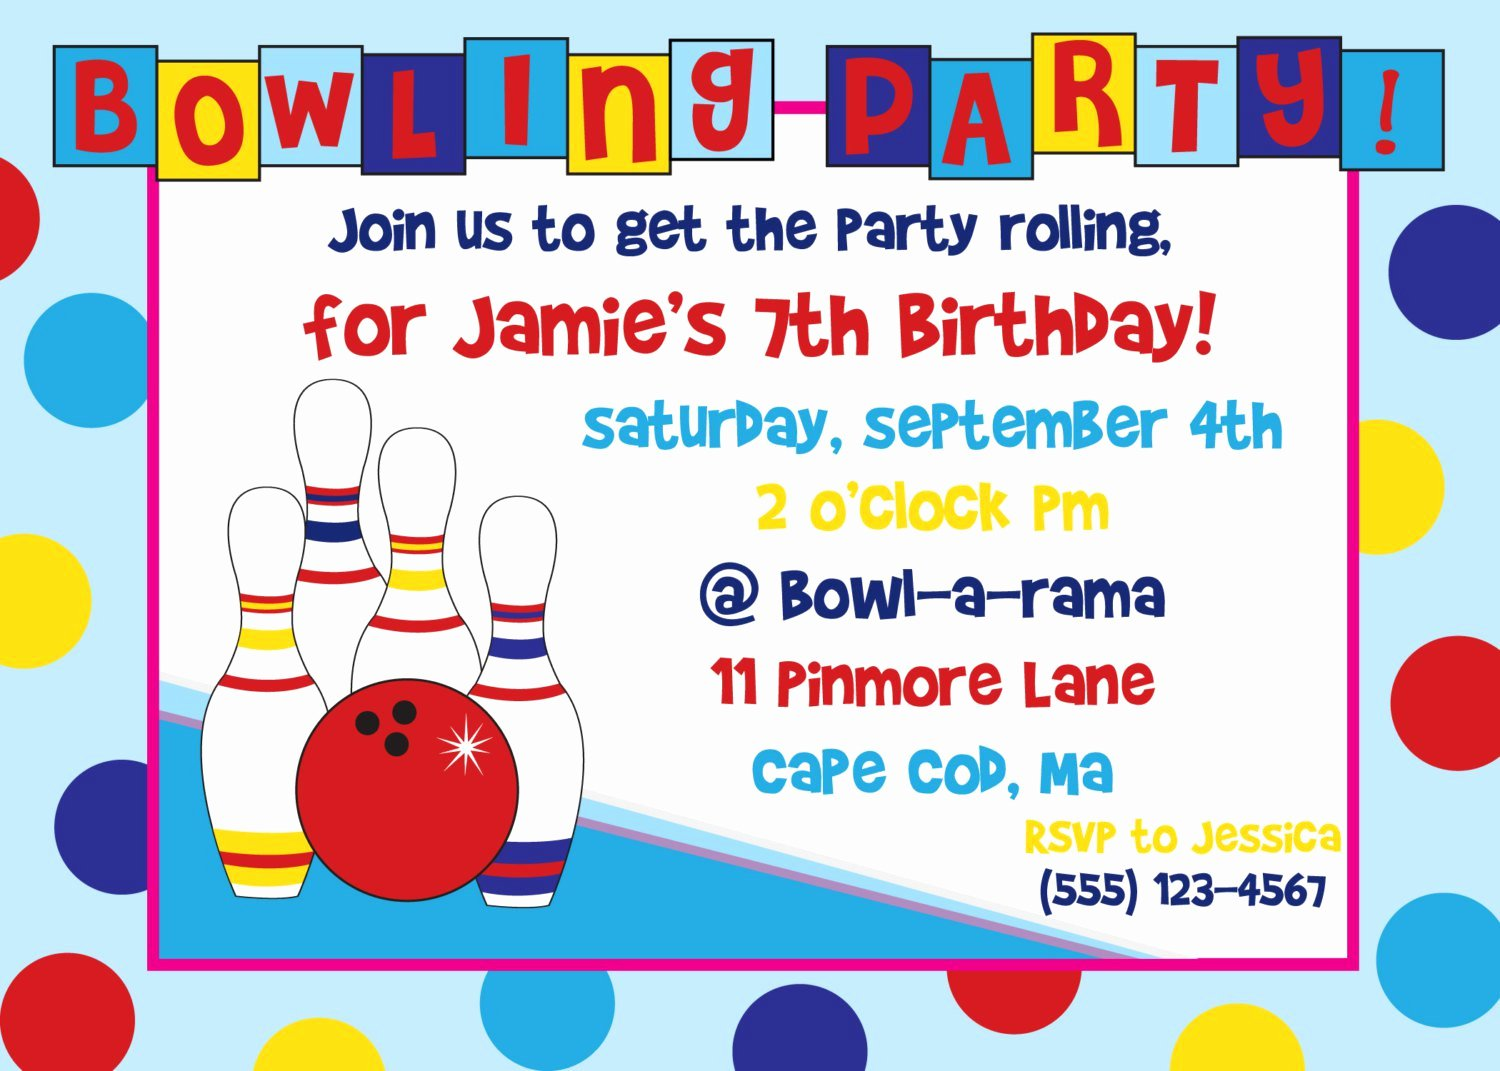 Bowling Party Invitations Templates Free Inspirational Bowling Birthday Party Invitations Free Templates